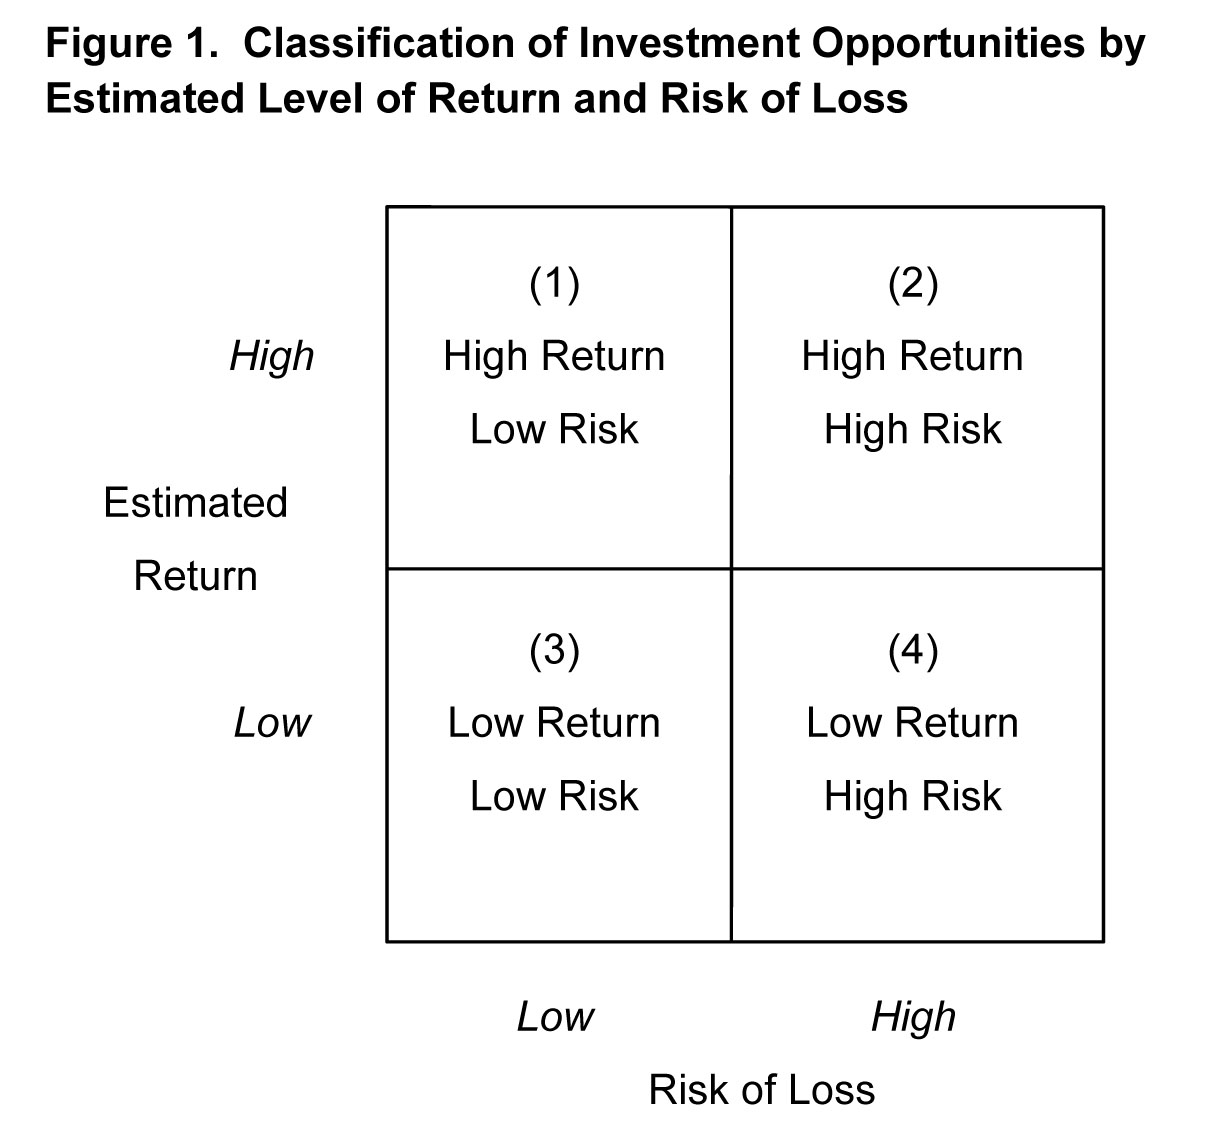 Classification of investment opportunities by estimated level of return adn risk of loss